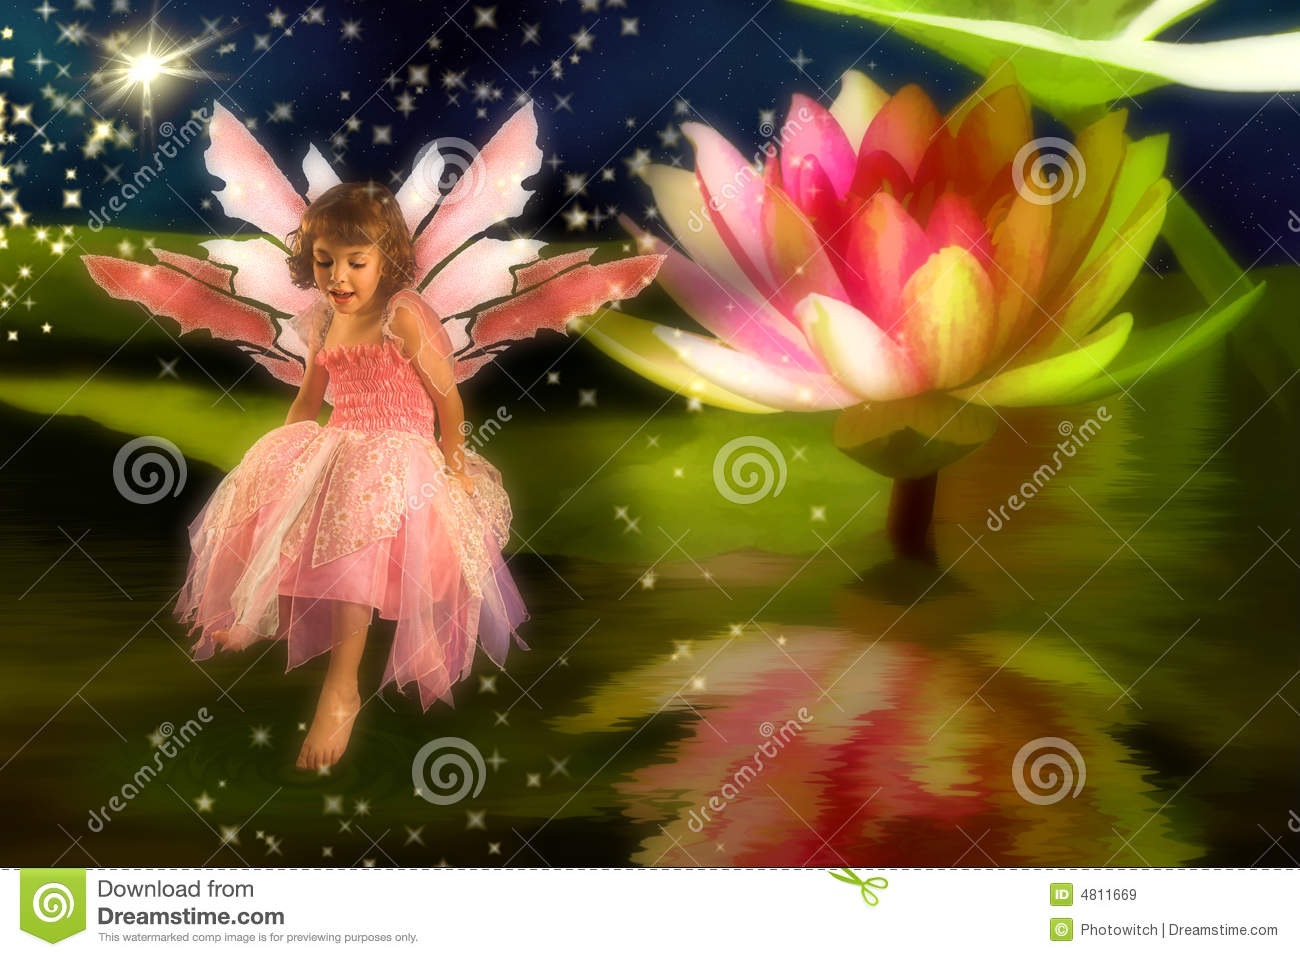 Fairy Stock Photos - Download 179,397 Images